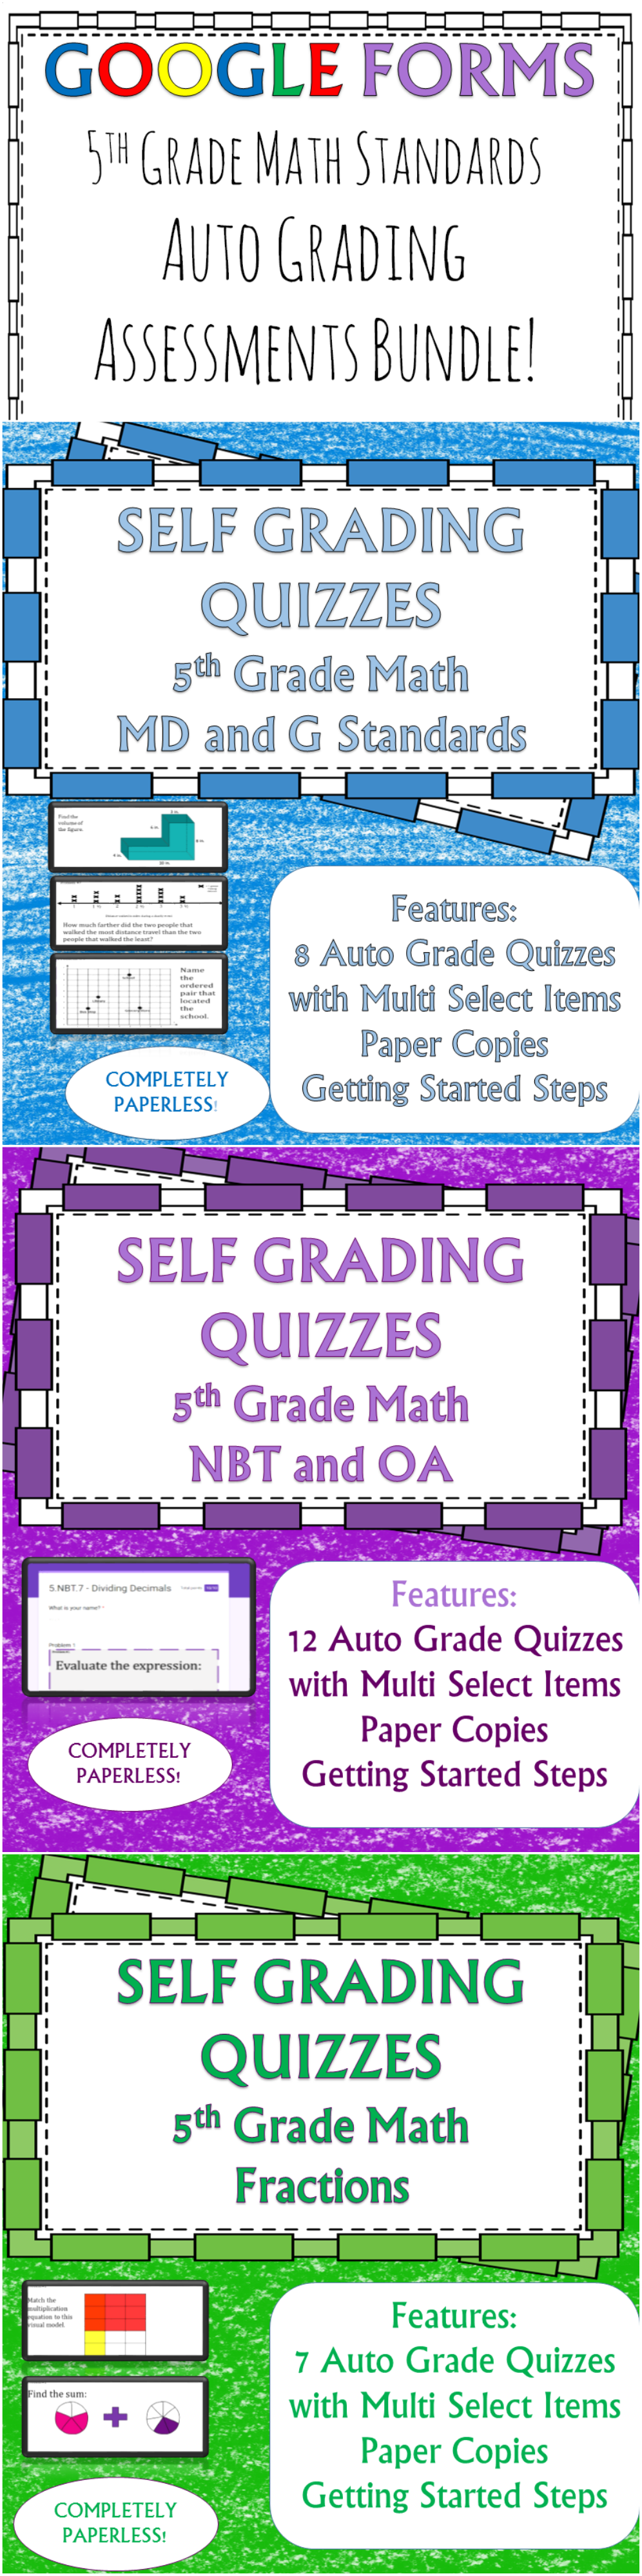 Google Forms Quizzes for all of the 5th grade standards! 27 quizzes that will cover the entire year for all for all of the skills that you teach! They grade automatically! Save yourself the hassle of grading and check these out today!